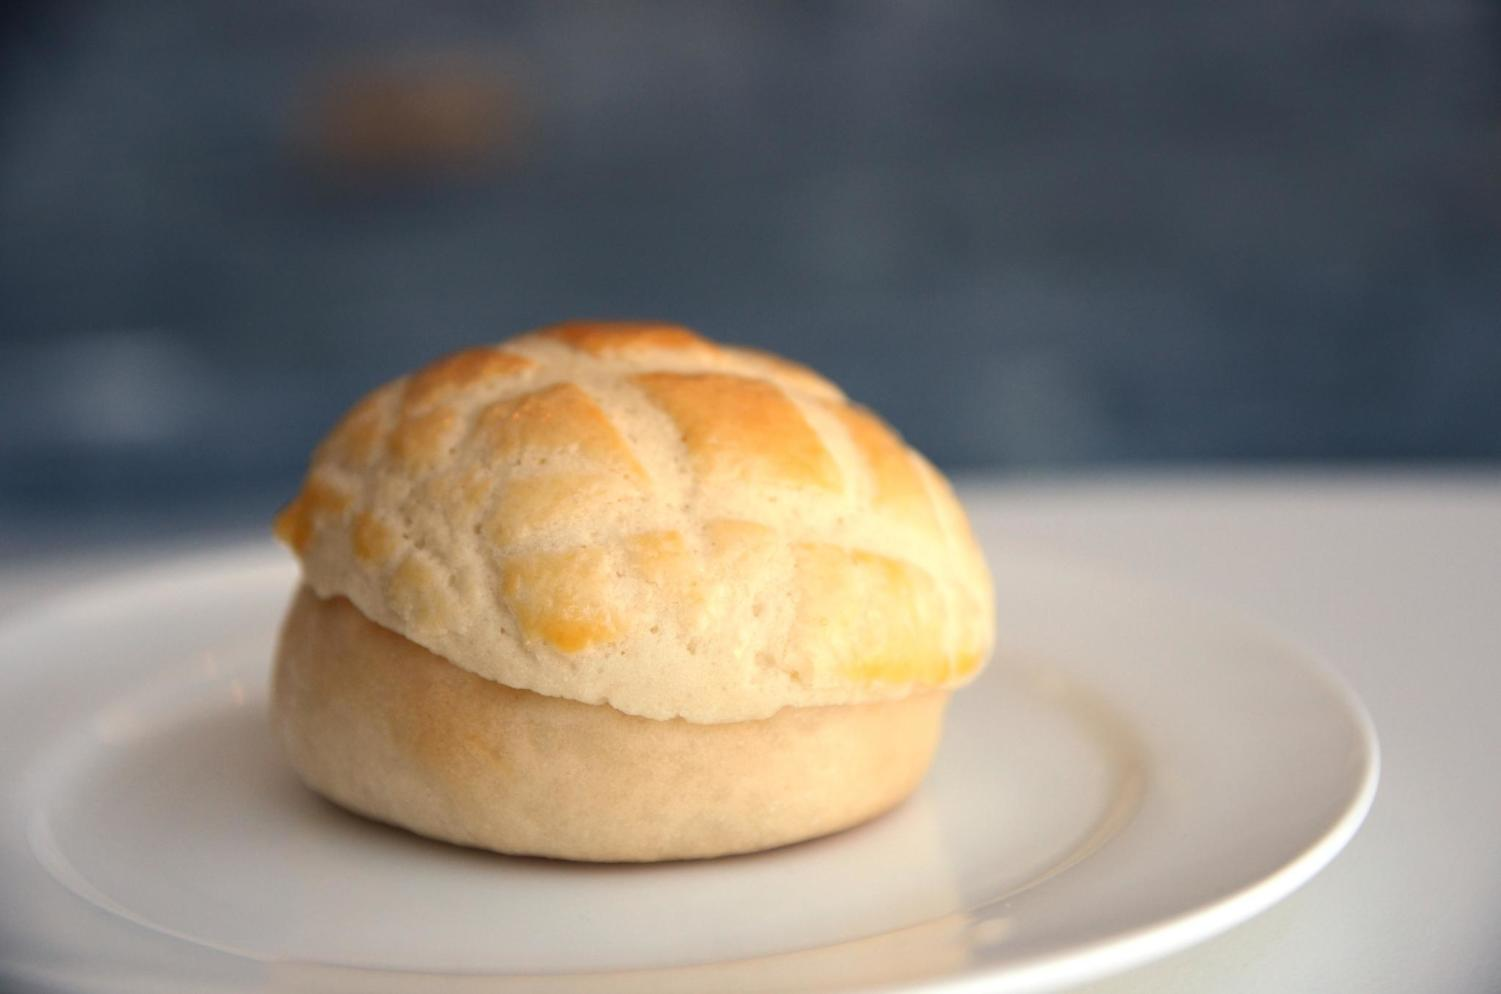 Buo Luo Bao is a sweet pineapple crusted bun with sweet condensed milk on the inside, and is one of the tastiest sweet asian breads.